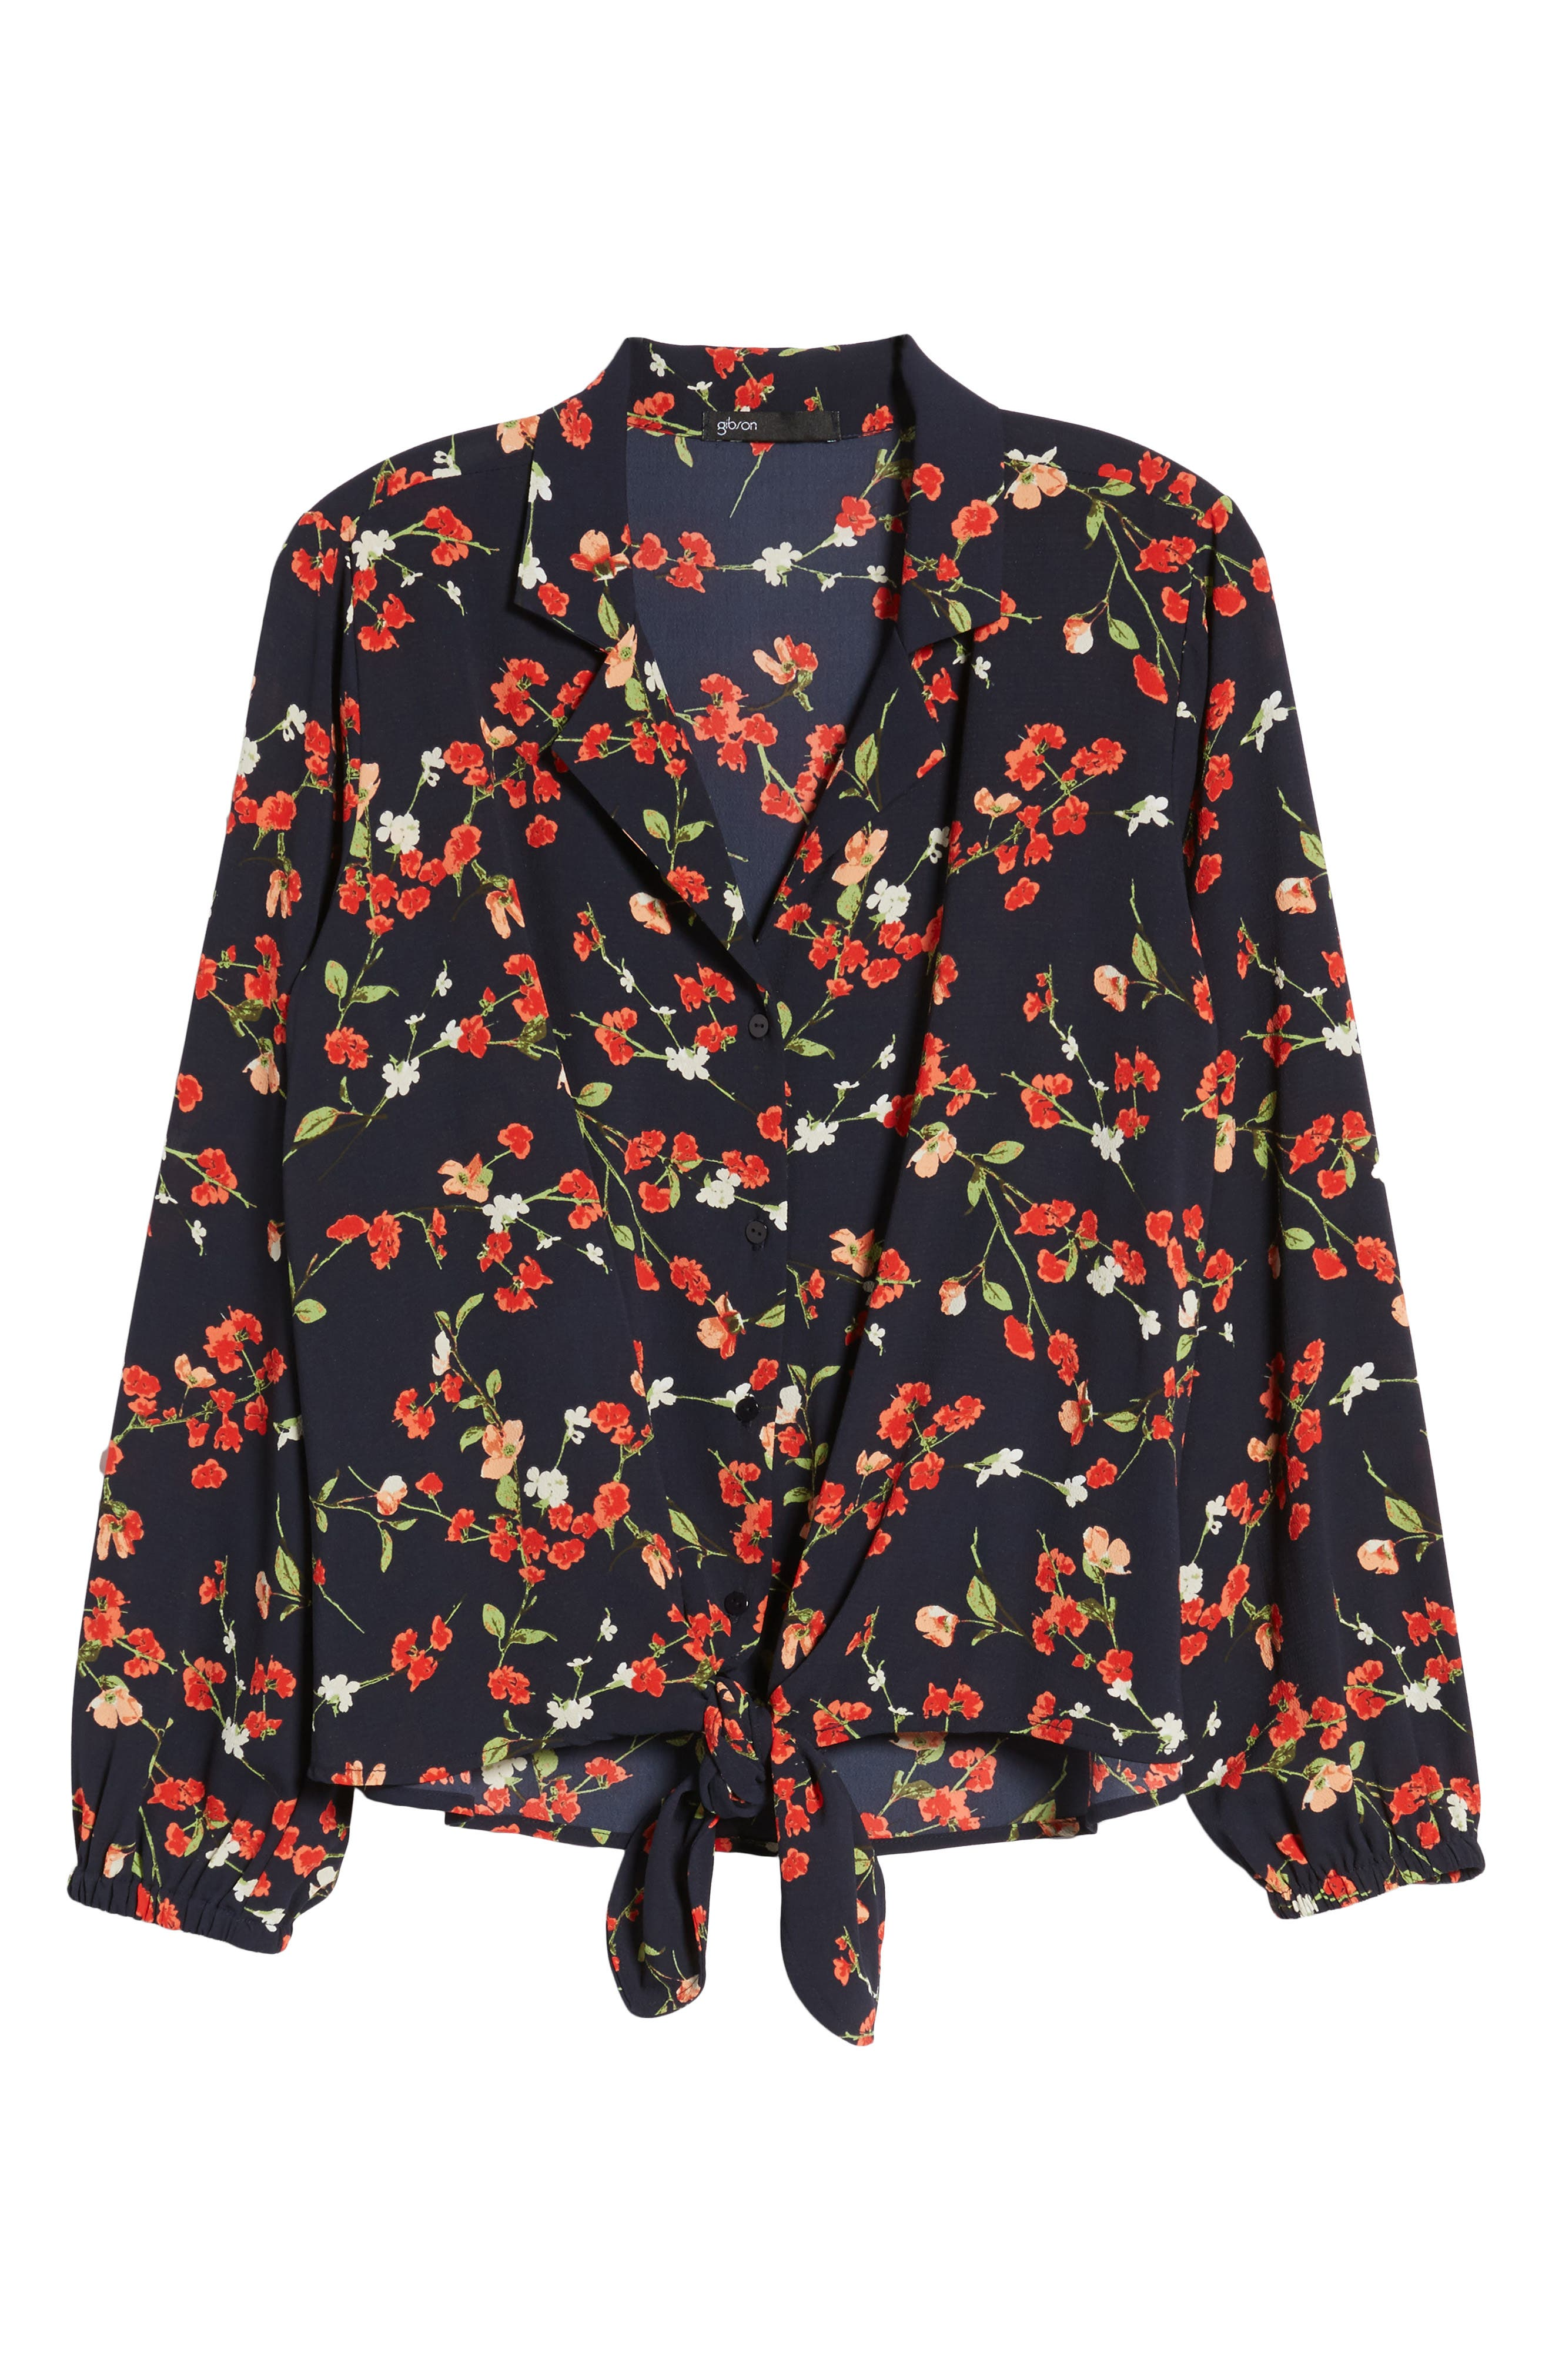 Relaxed Tie Front Top,                             Alternate thumbnail 7, color,                             Black Print With Red Flowers